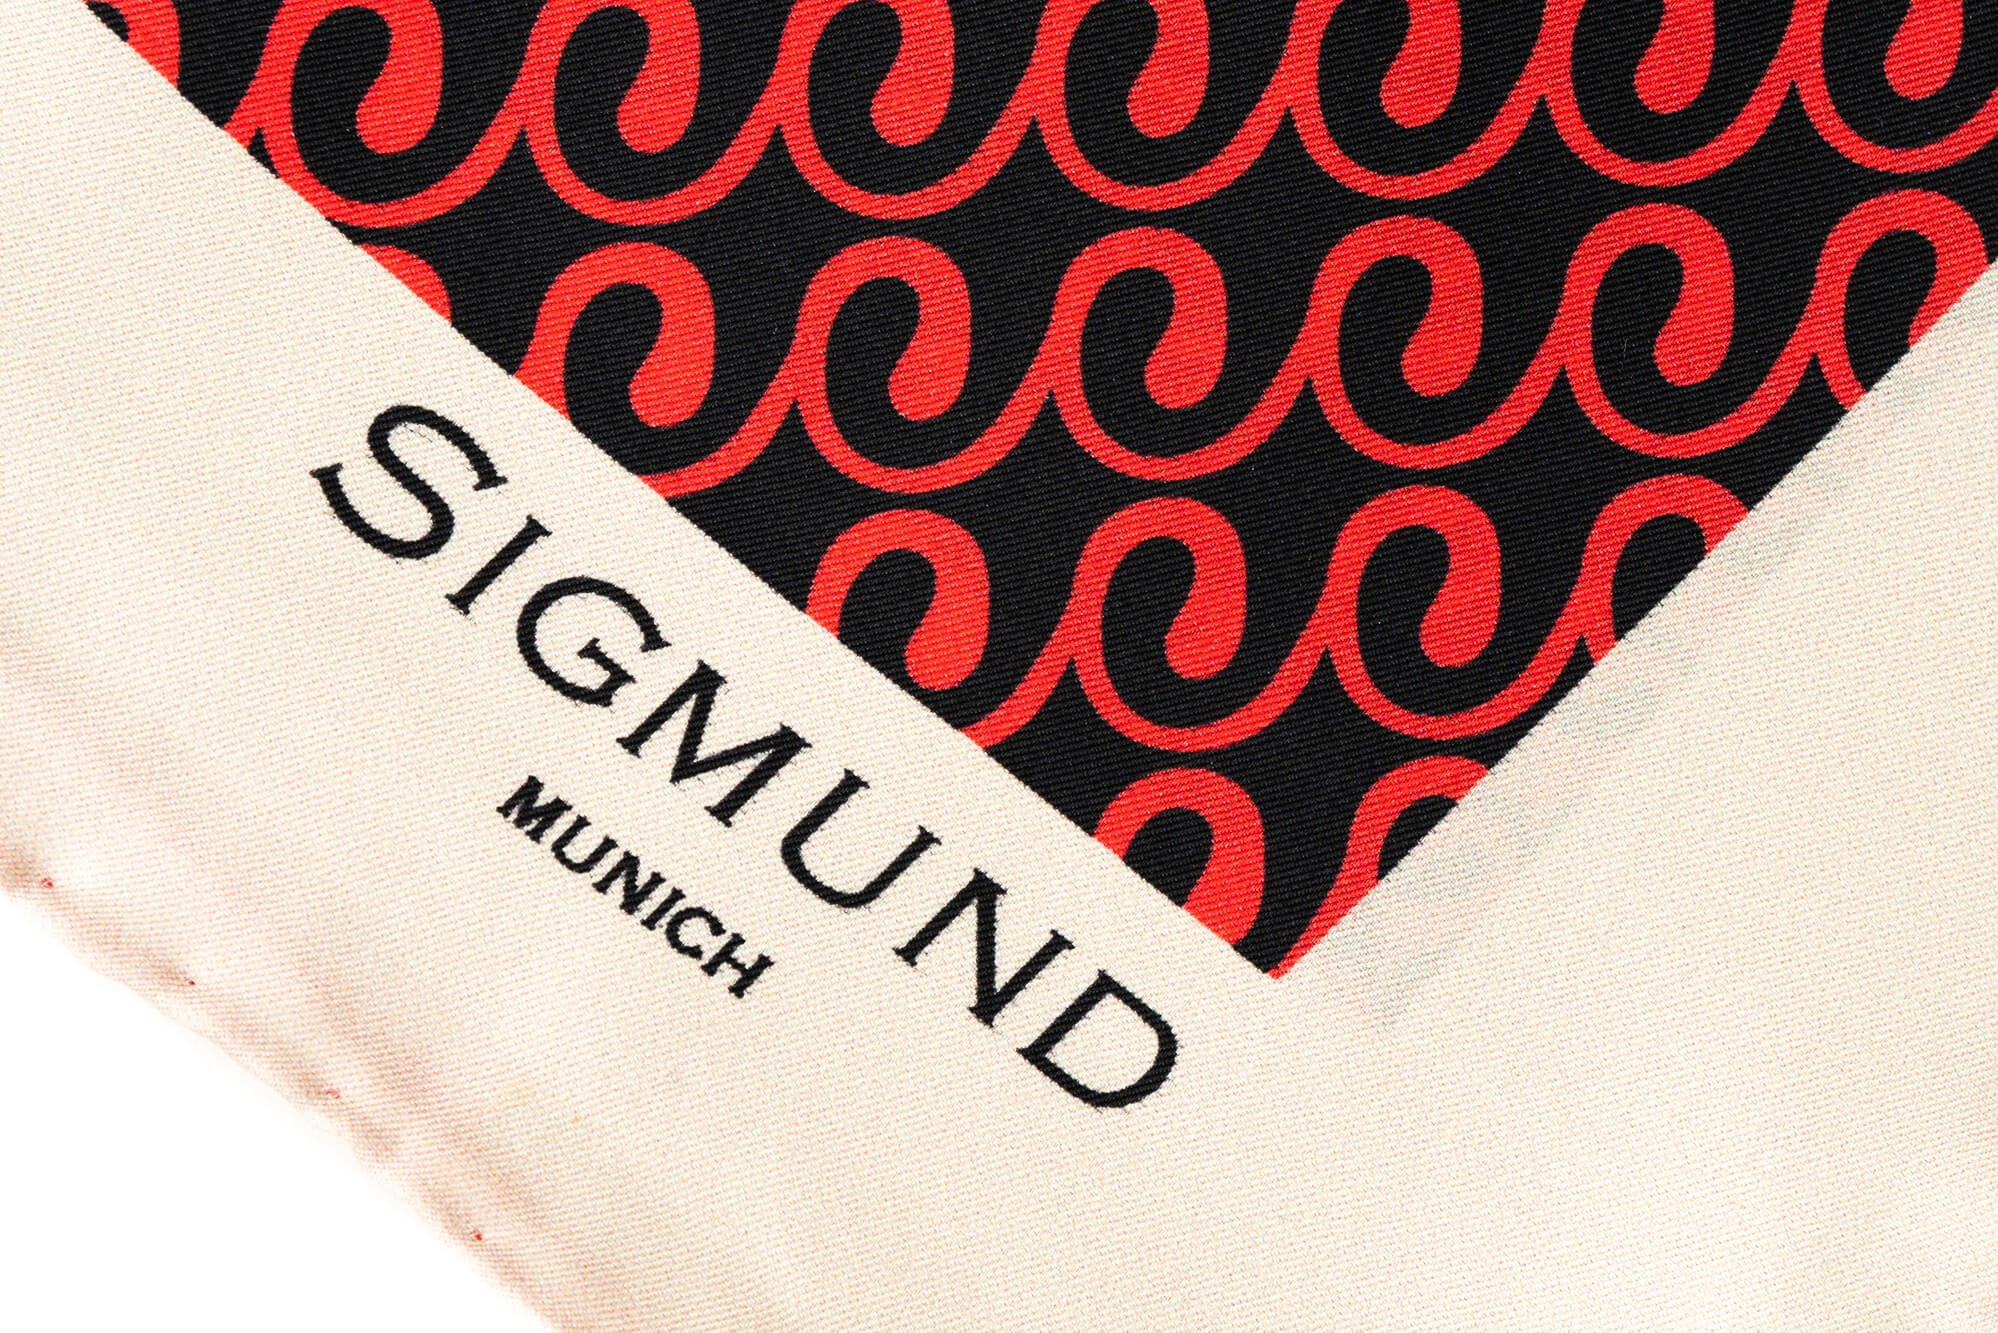 Einstecktuch EDITION SIGMUND in rot